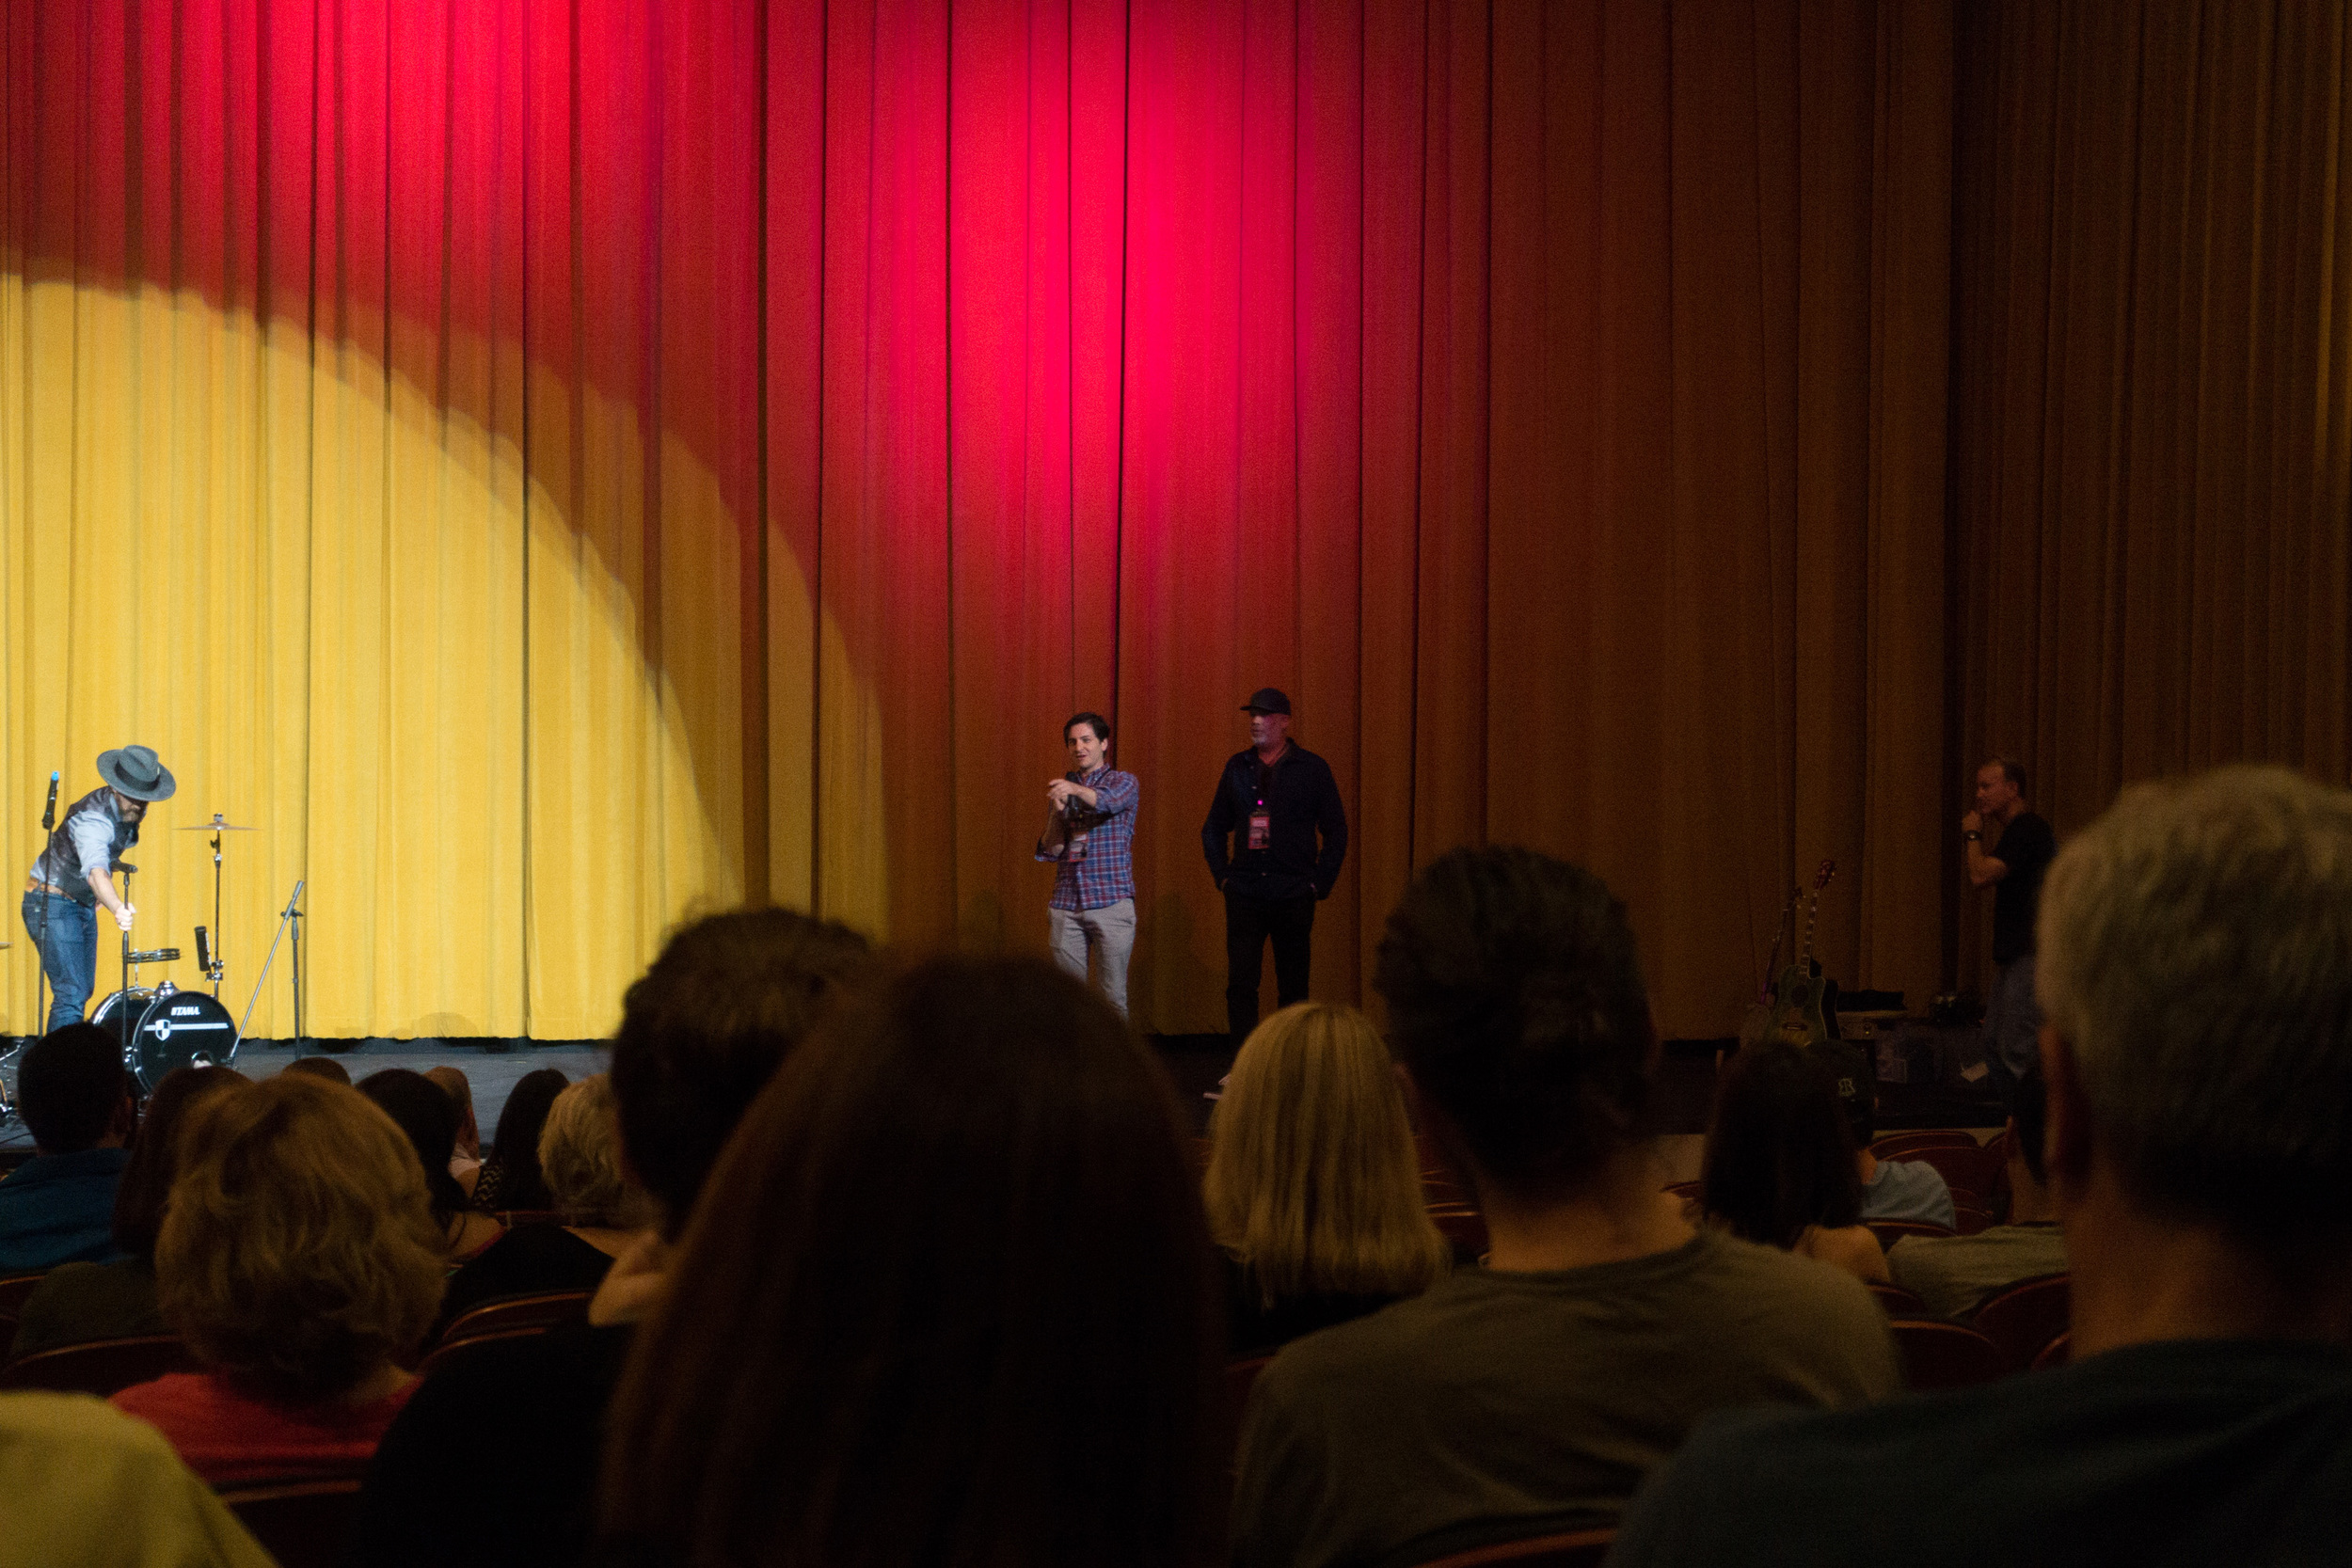 Quick Q&A after the film.